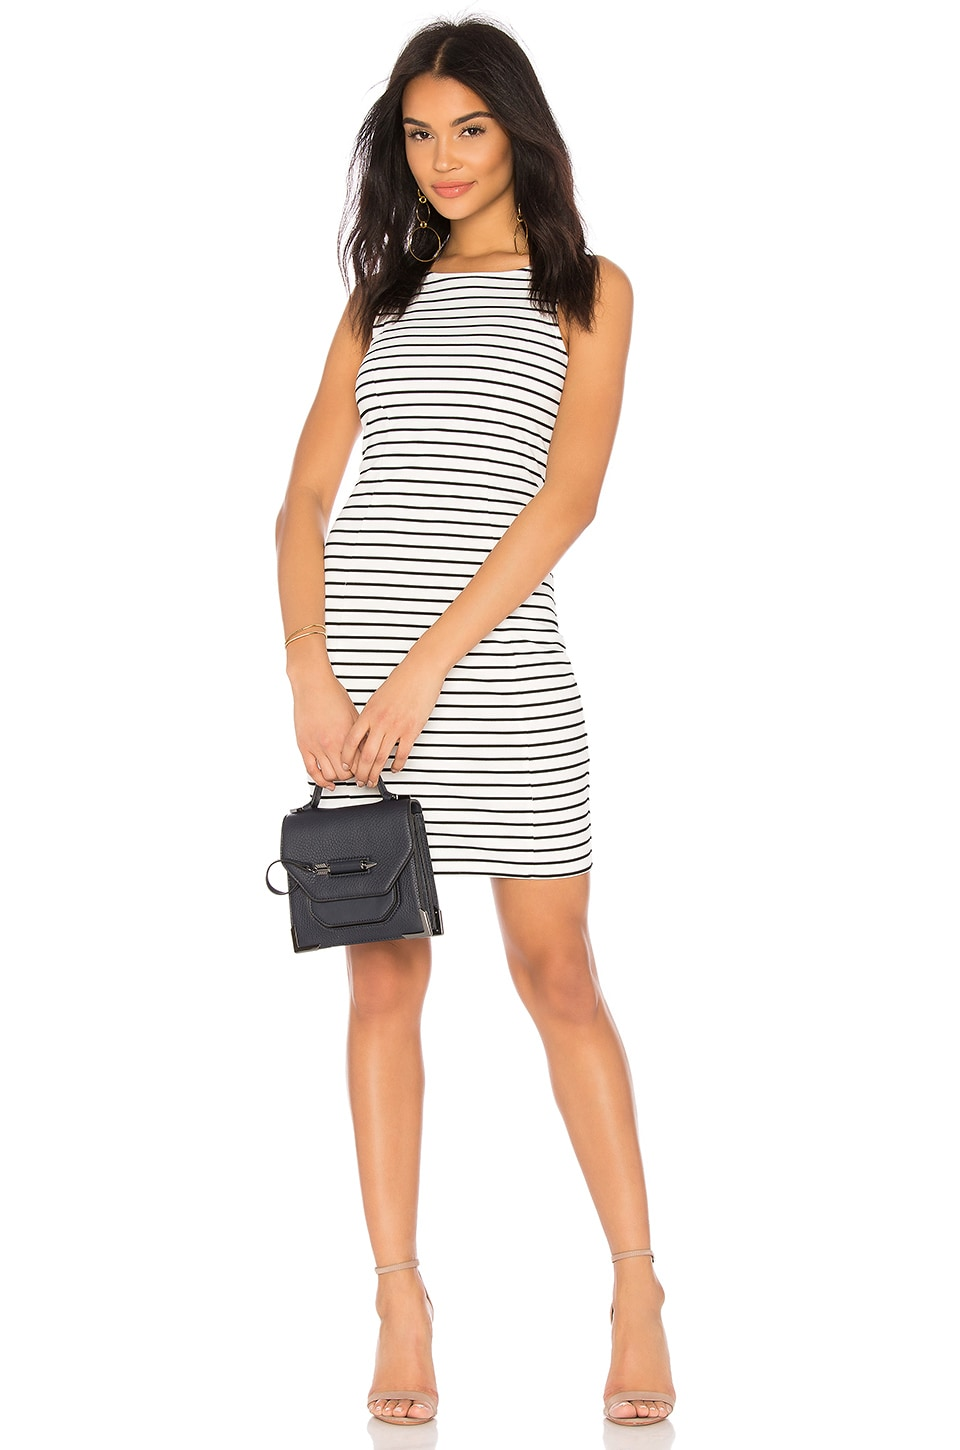 BB Dakota JACK by BB Dakota Karen Dress in Bright White